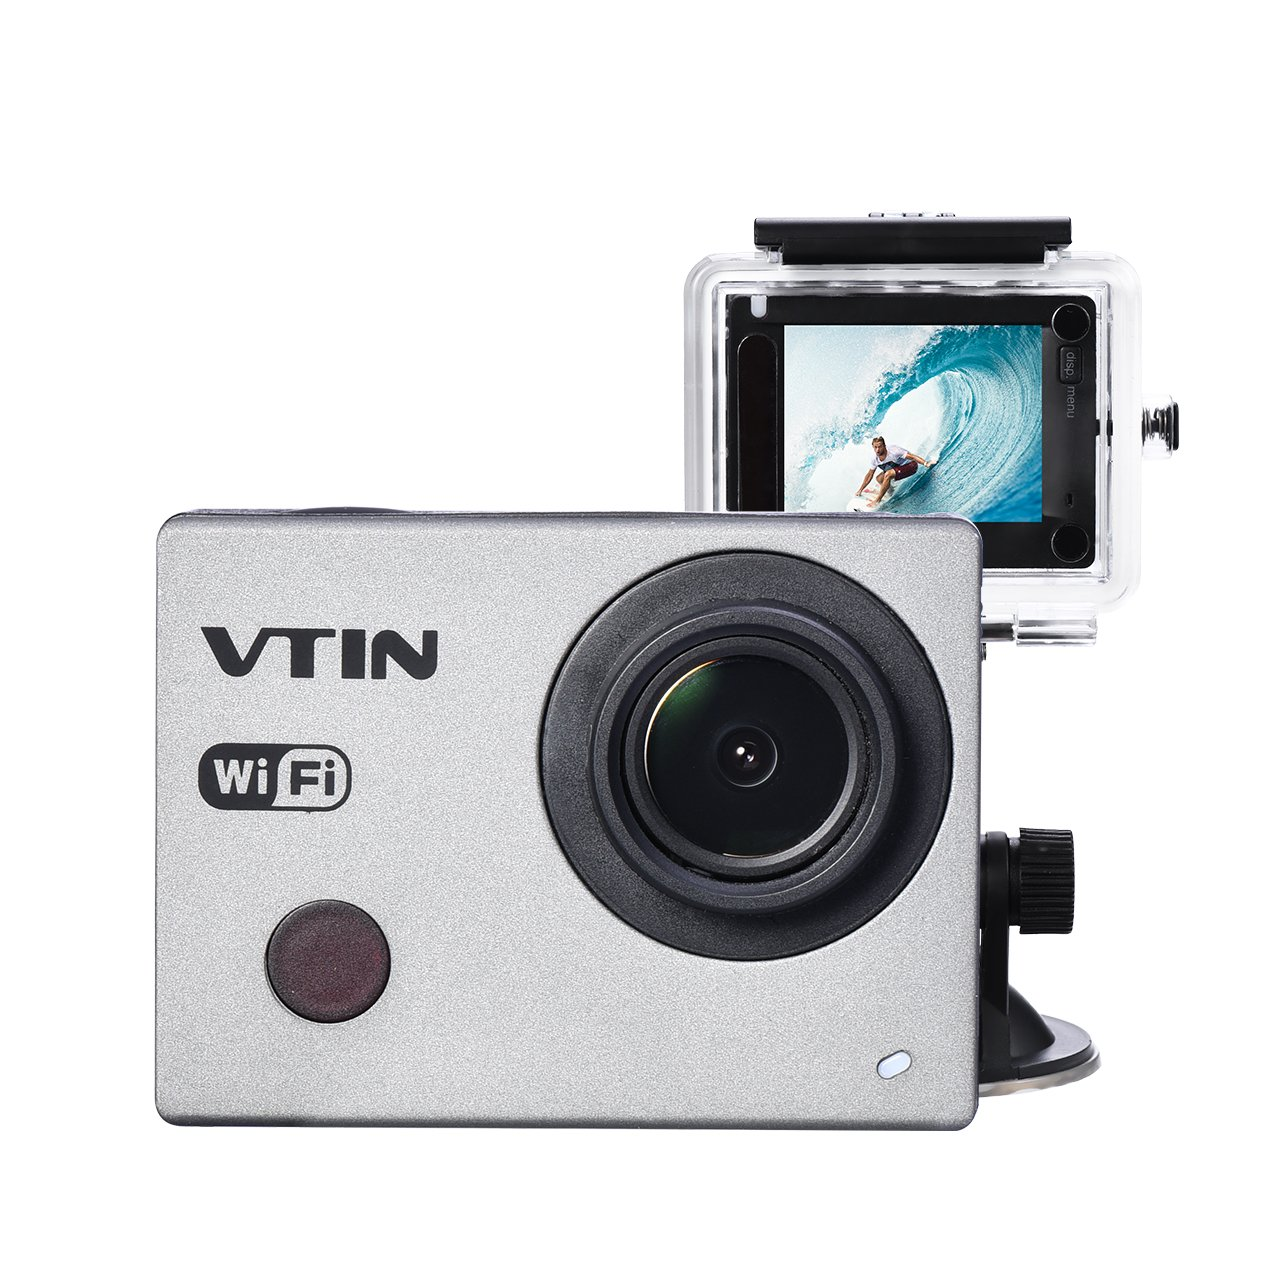 Vtin WiFi Action Video Camera 2-Inch 1080P 30fps FHD Sports Camera Waterproof DV Camcorder with Wrist Remote Control - 2 Batteries VD-VNOD050AB